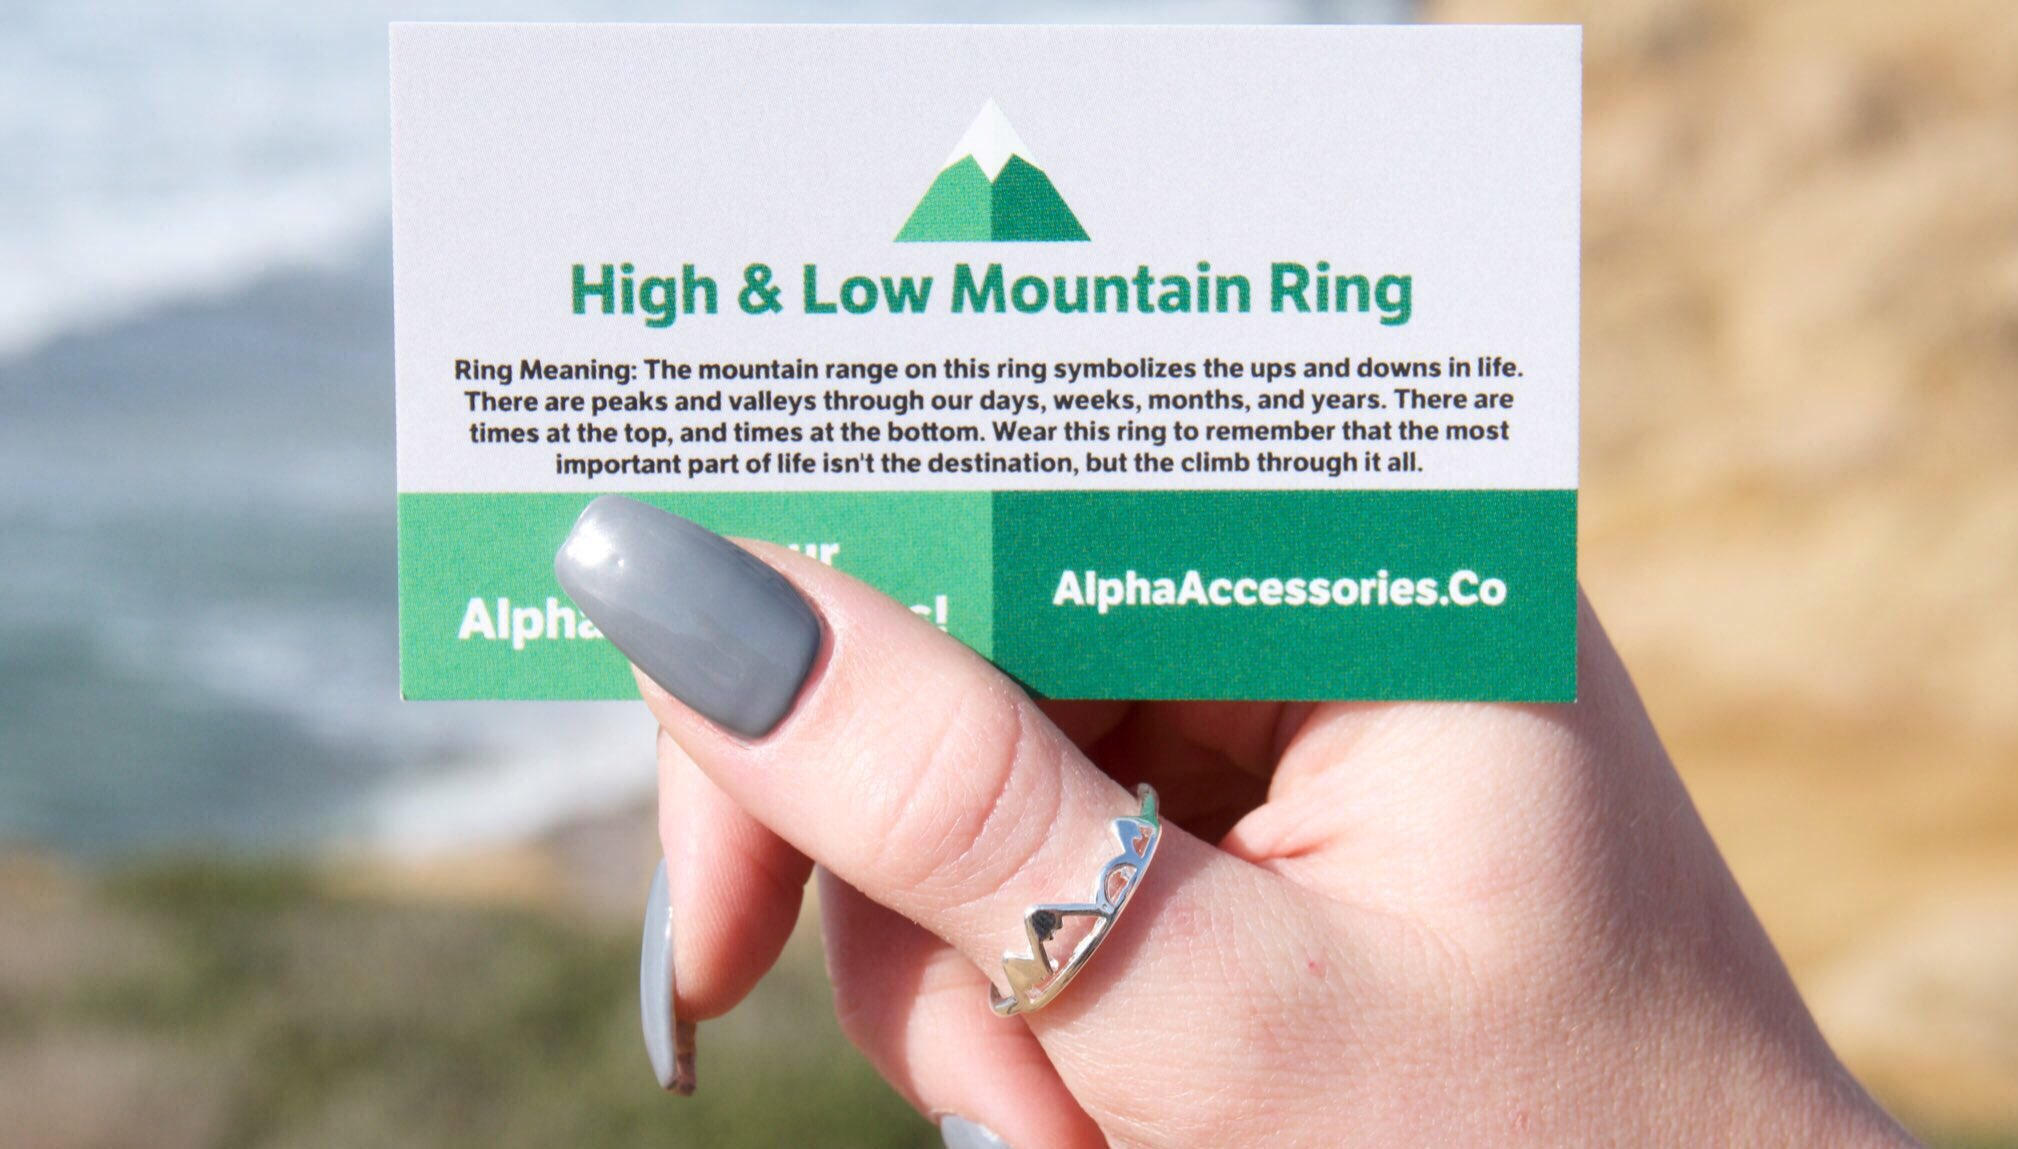 Neeed this high & low mountain ring from https://t.co/cYrLI2a8iV https://t.co/SstCfG61fq